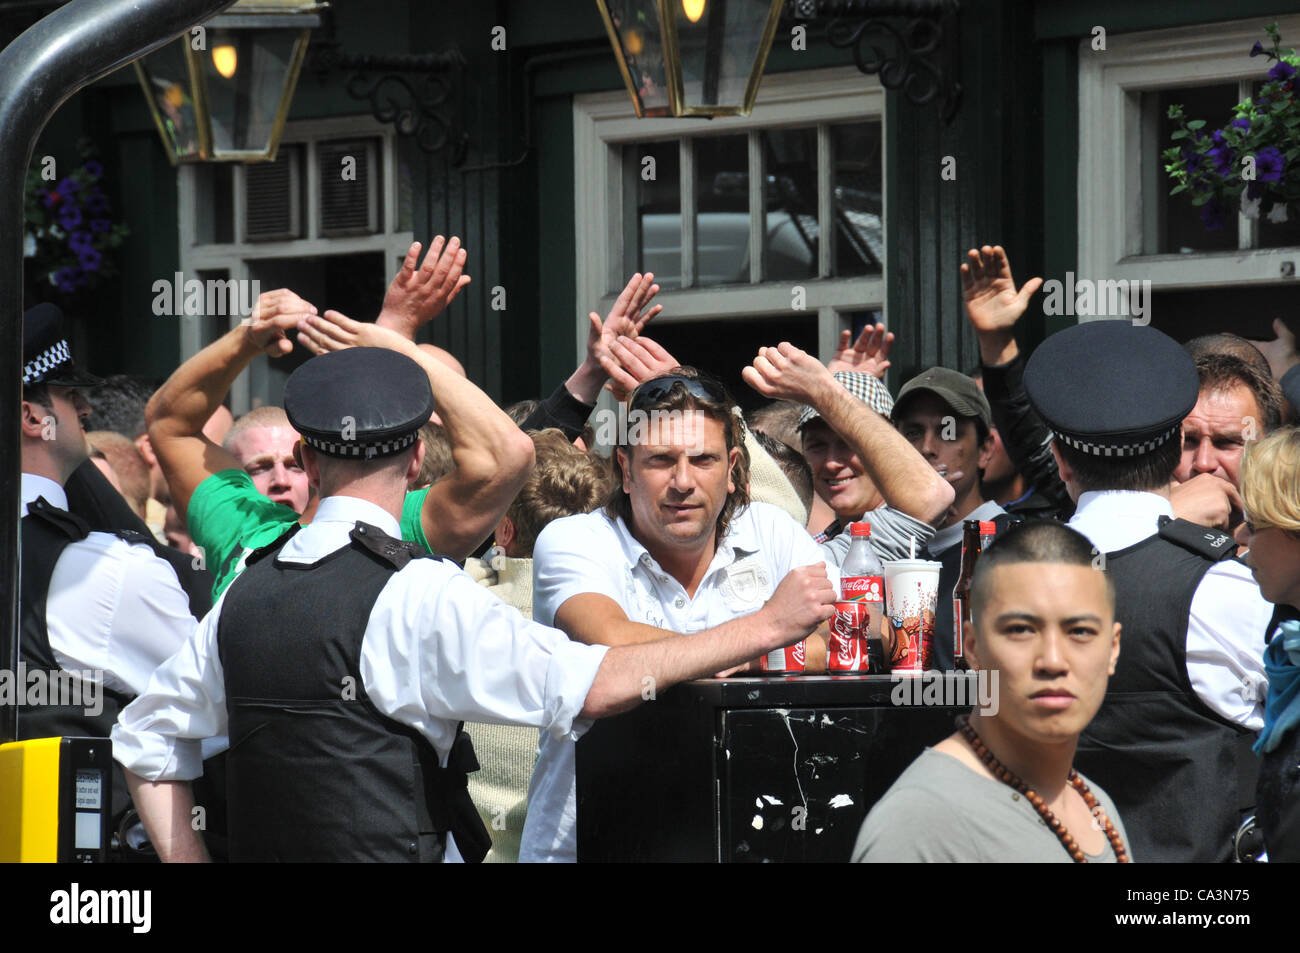 2nd June 2012. Leicester Square, London, UK. Tension mounts as Police seperate football fans outside Leicester Square - Stock Image